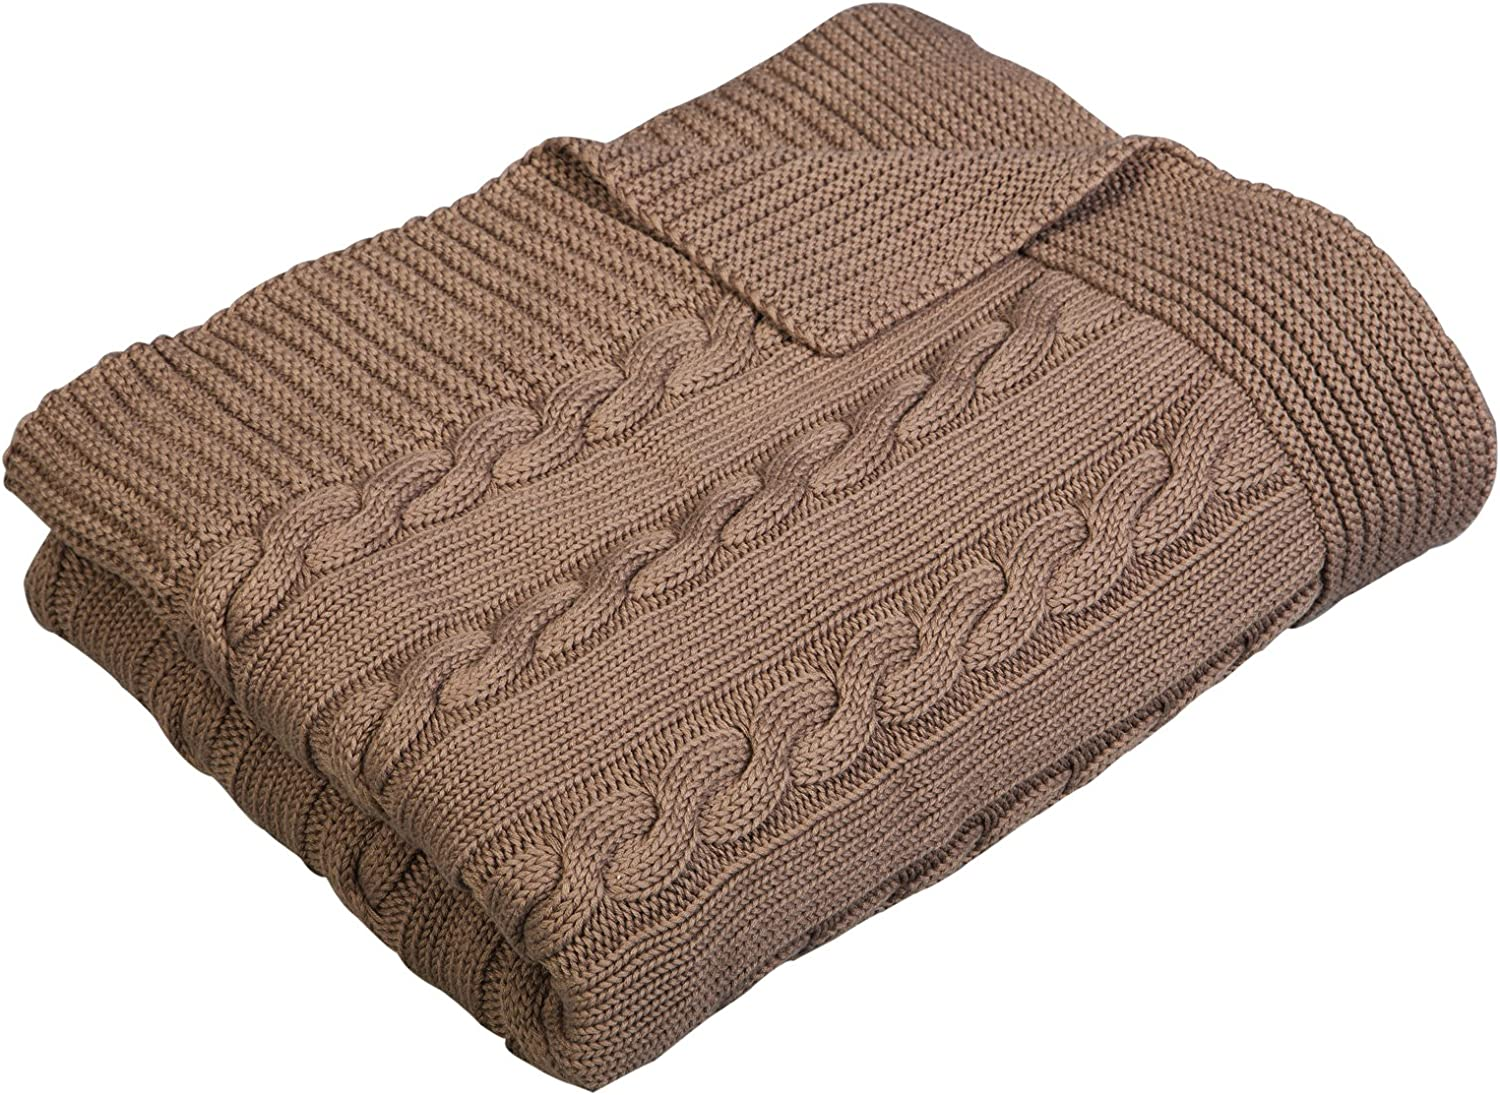 Arus Luxury Cotton Cable Knit Throw Blanket, Chocolate